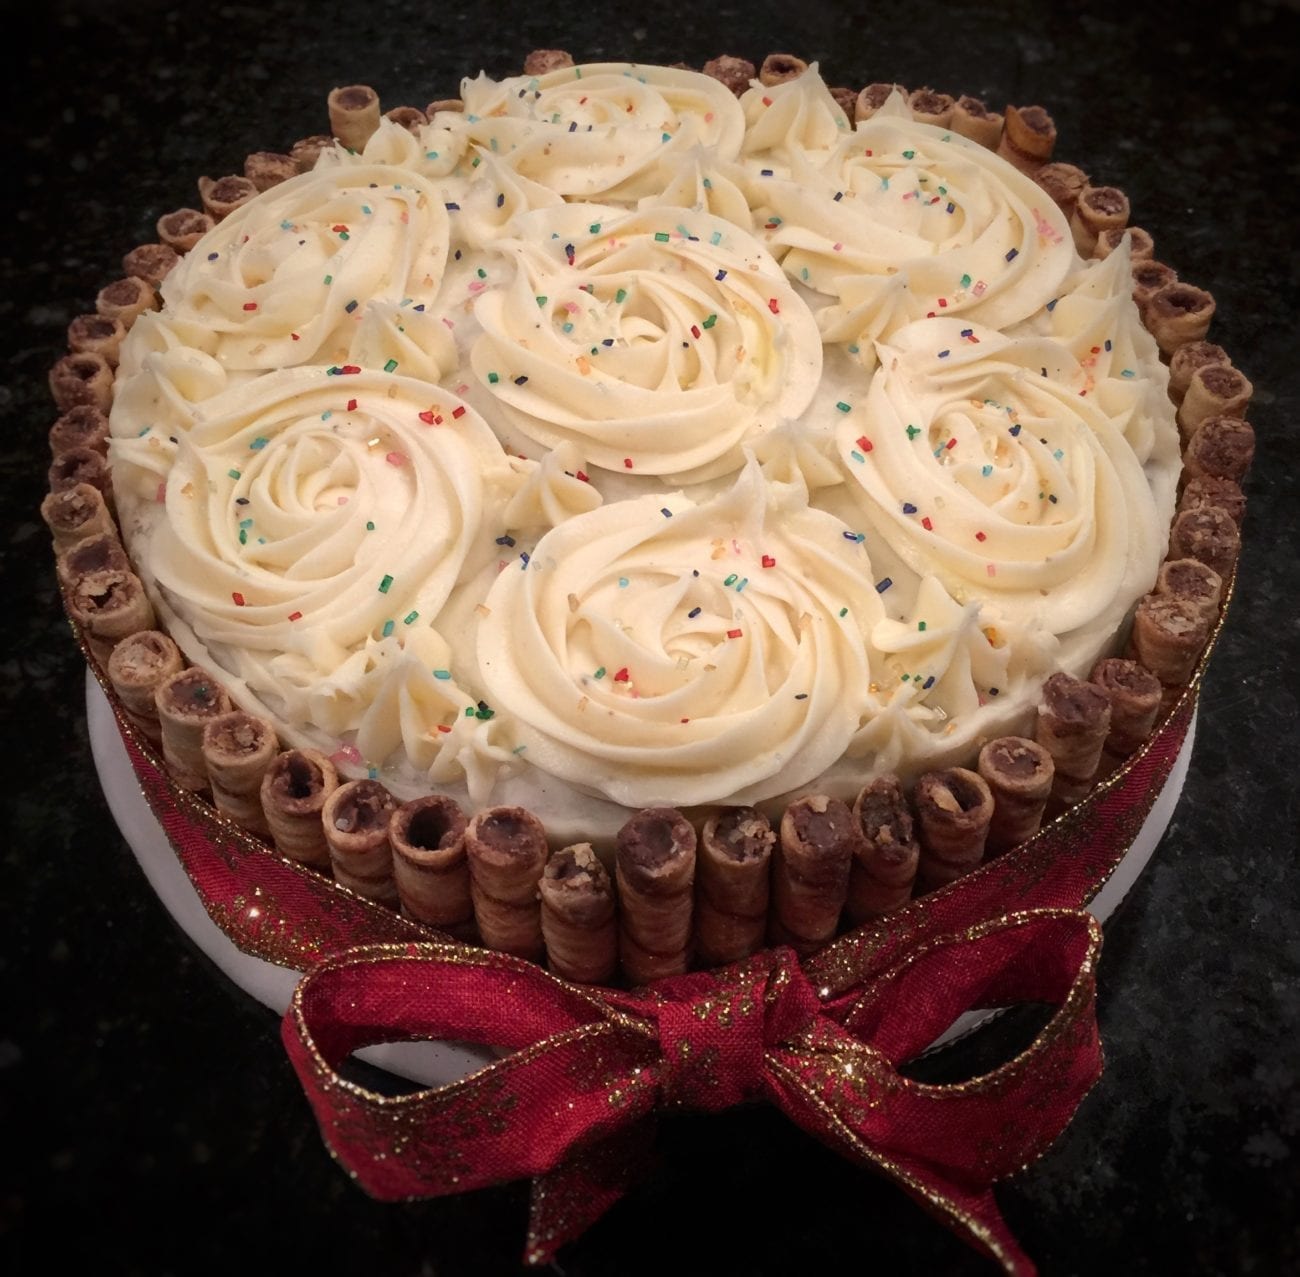 Spiced Cake with Cream Cheese Frosting